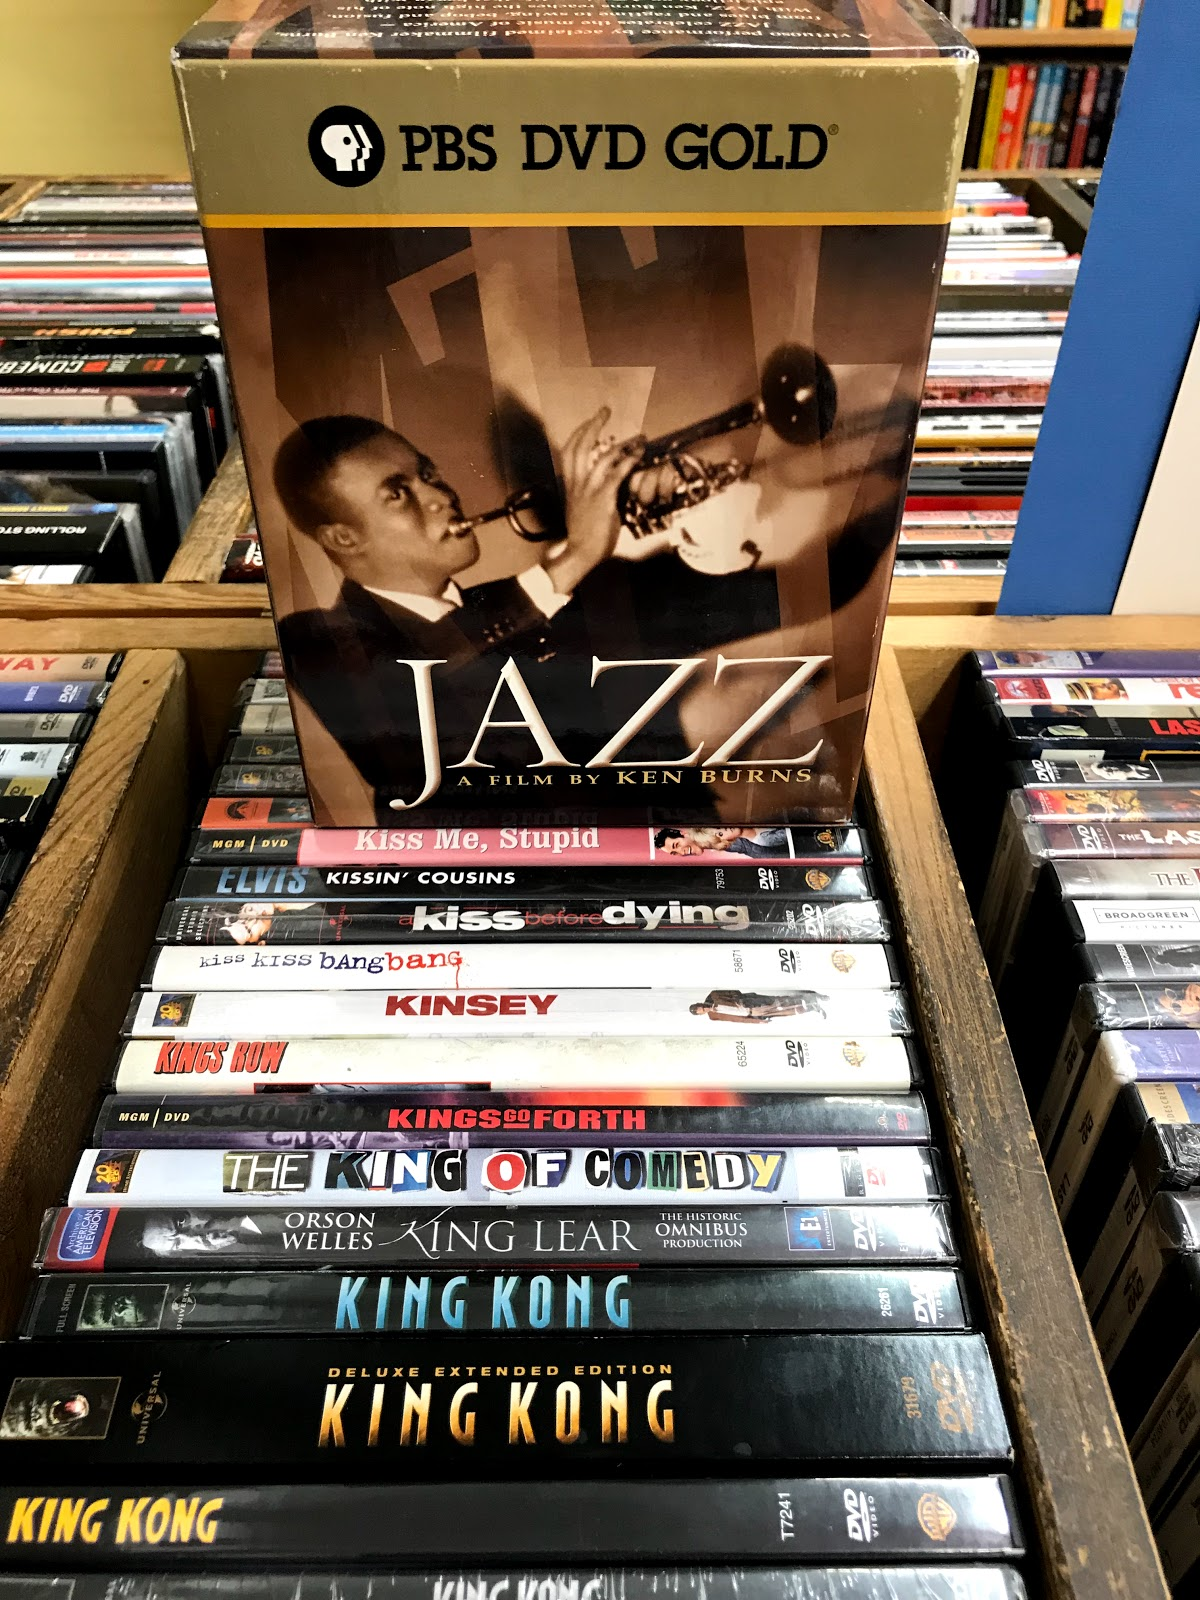 Image: DVD's and CD's of jazz at a local bookstore.